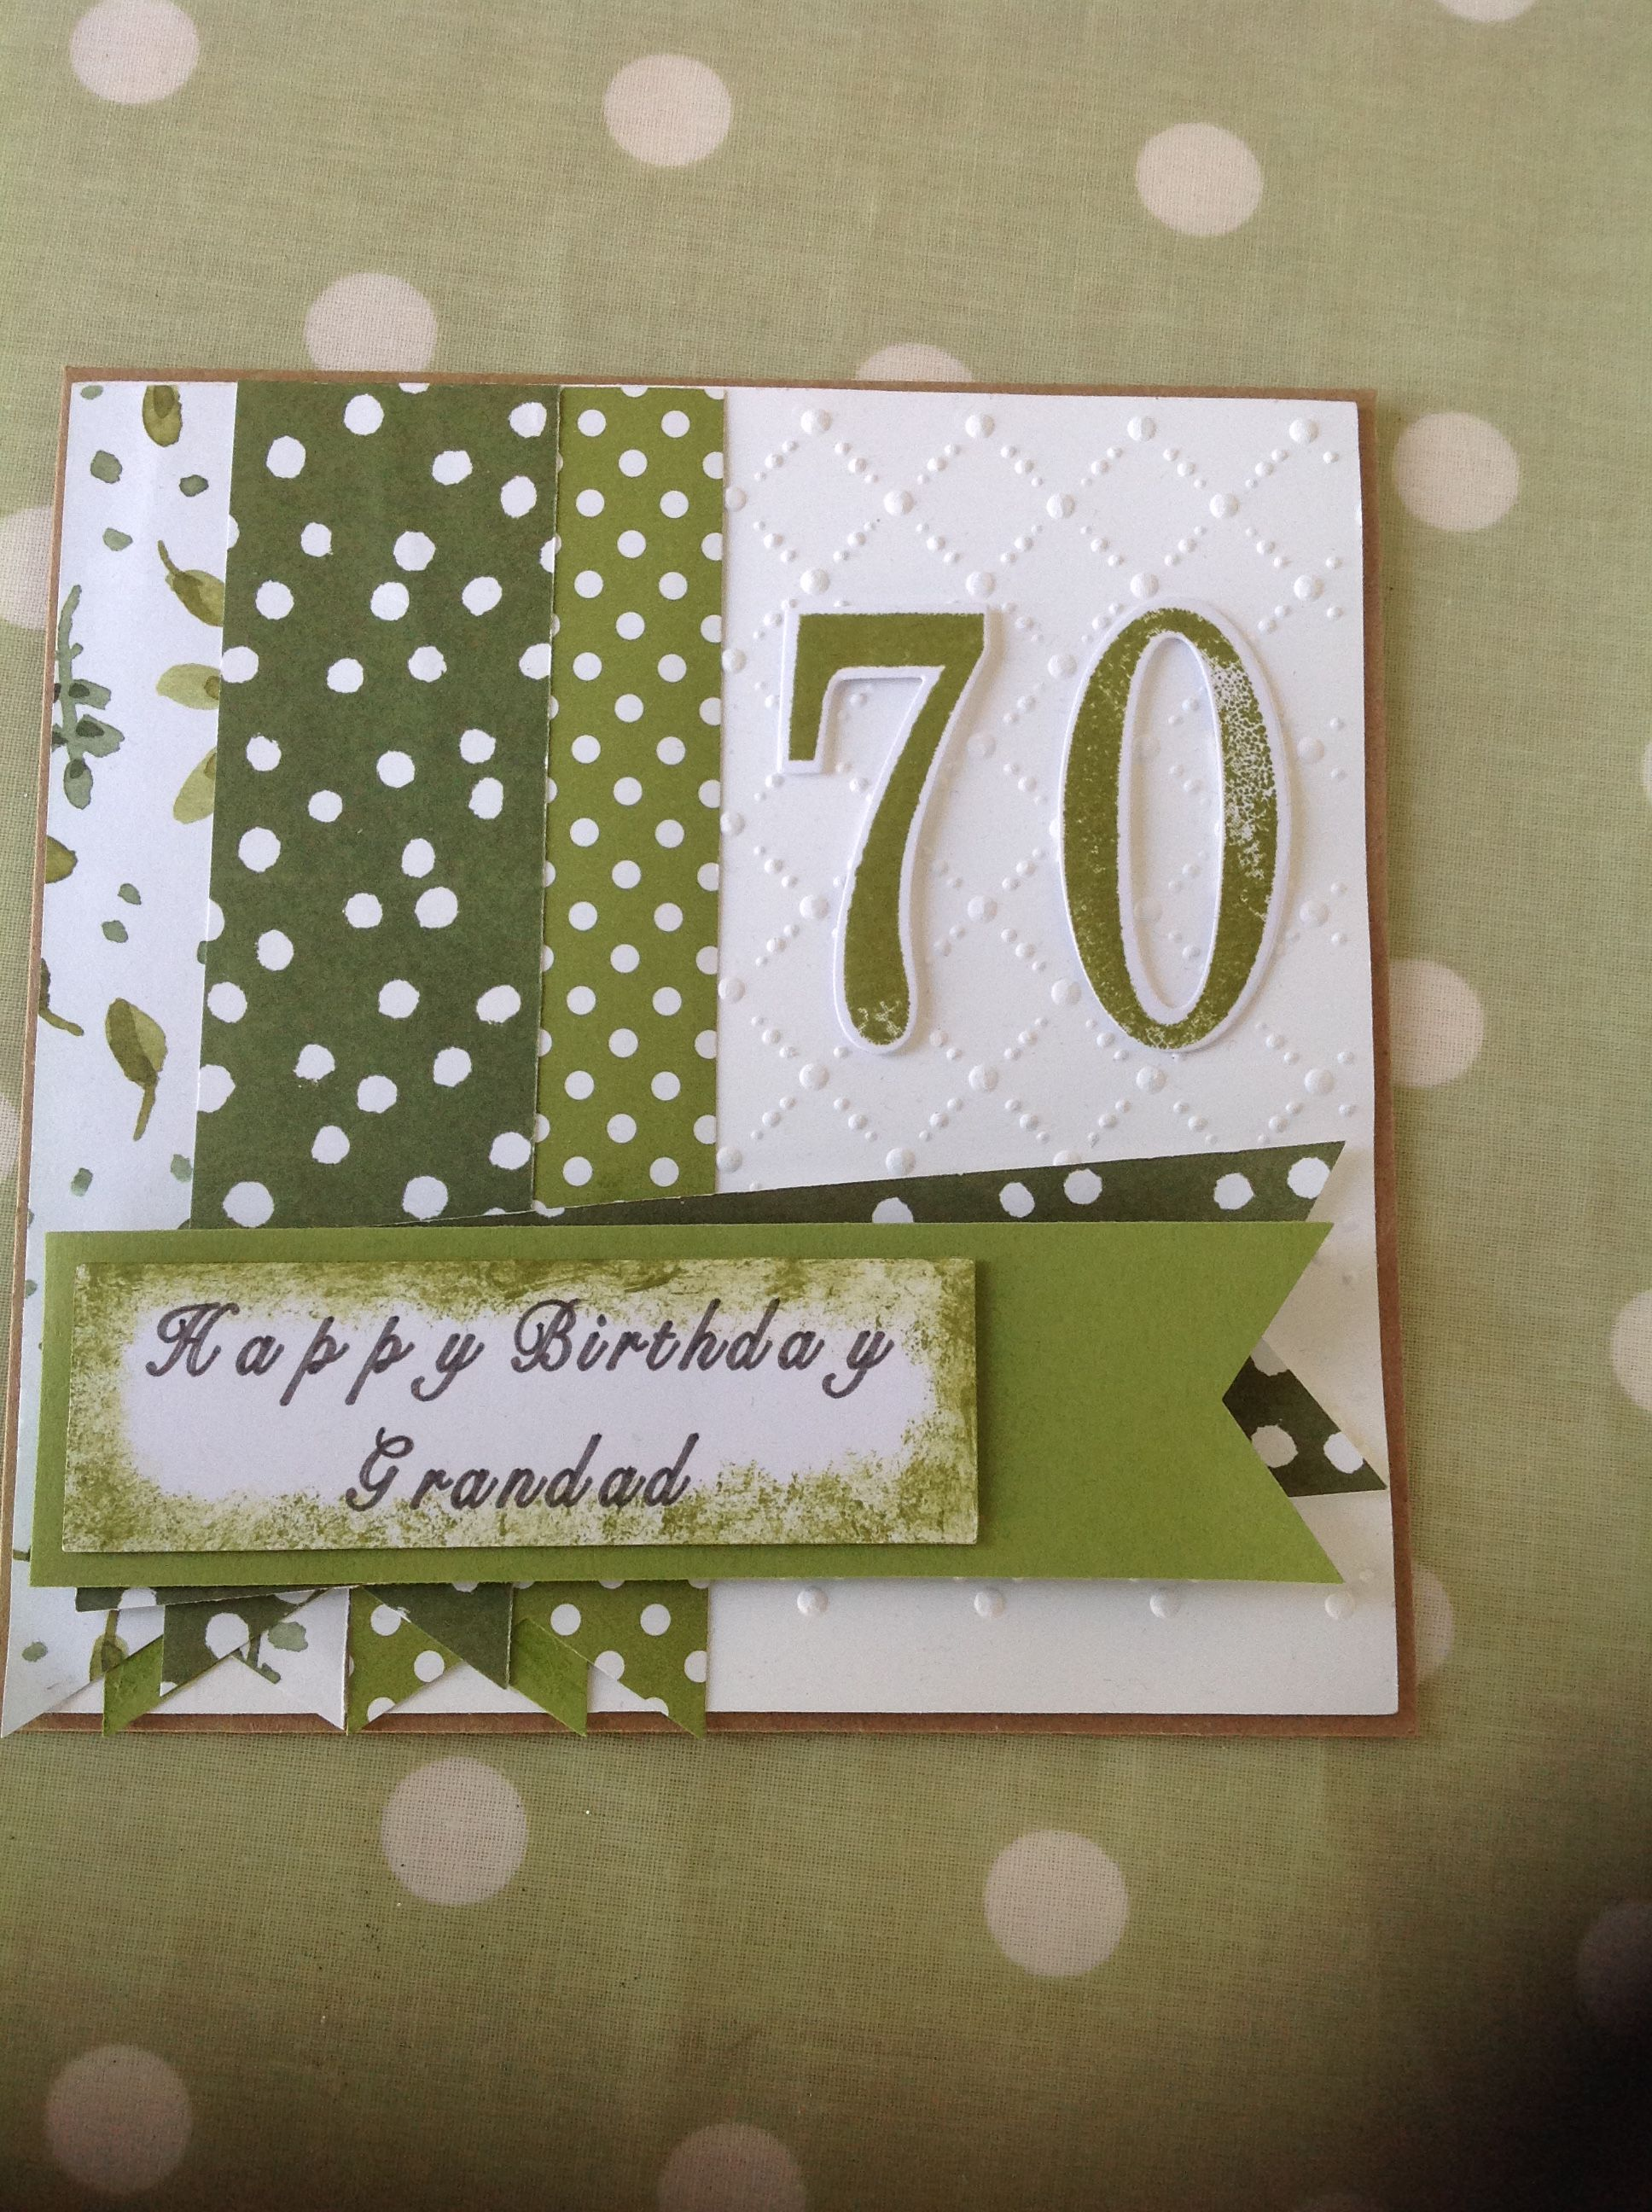 Stampin Up Number Of Years Stamp Die Set English Garden Dsp 70th Birthday Card 70th Birthday Card Birthday Cards Birthday Cards For Men